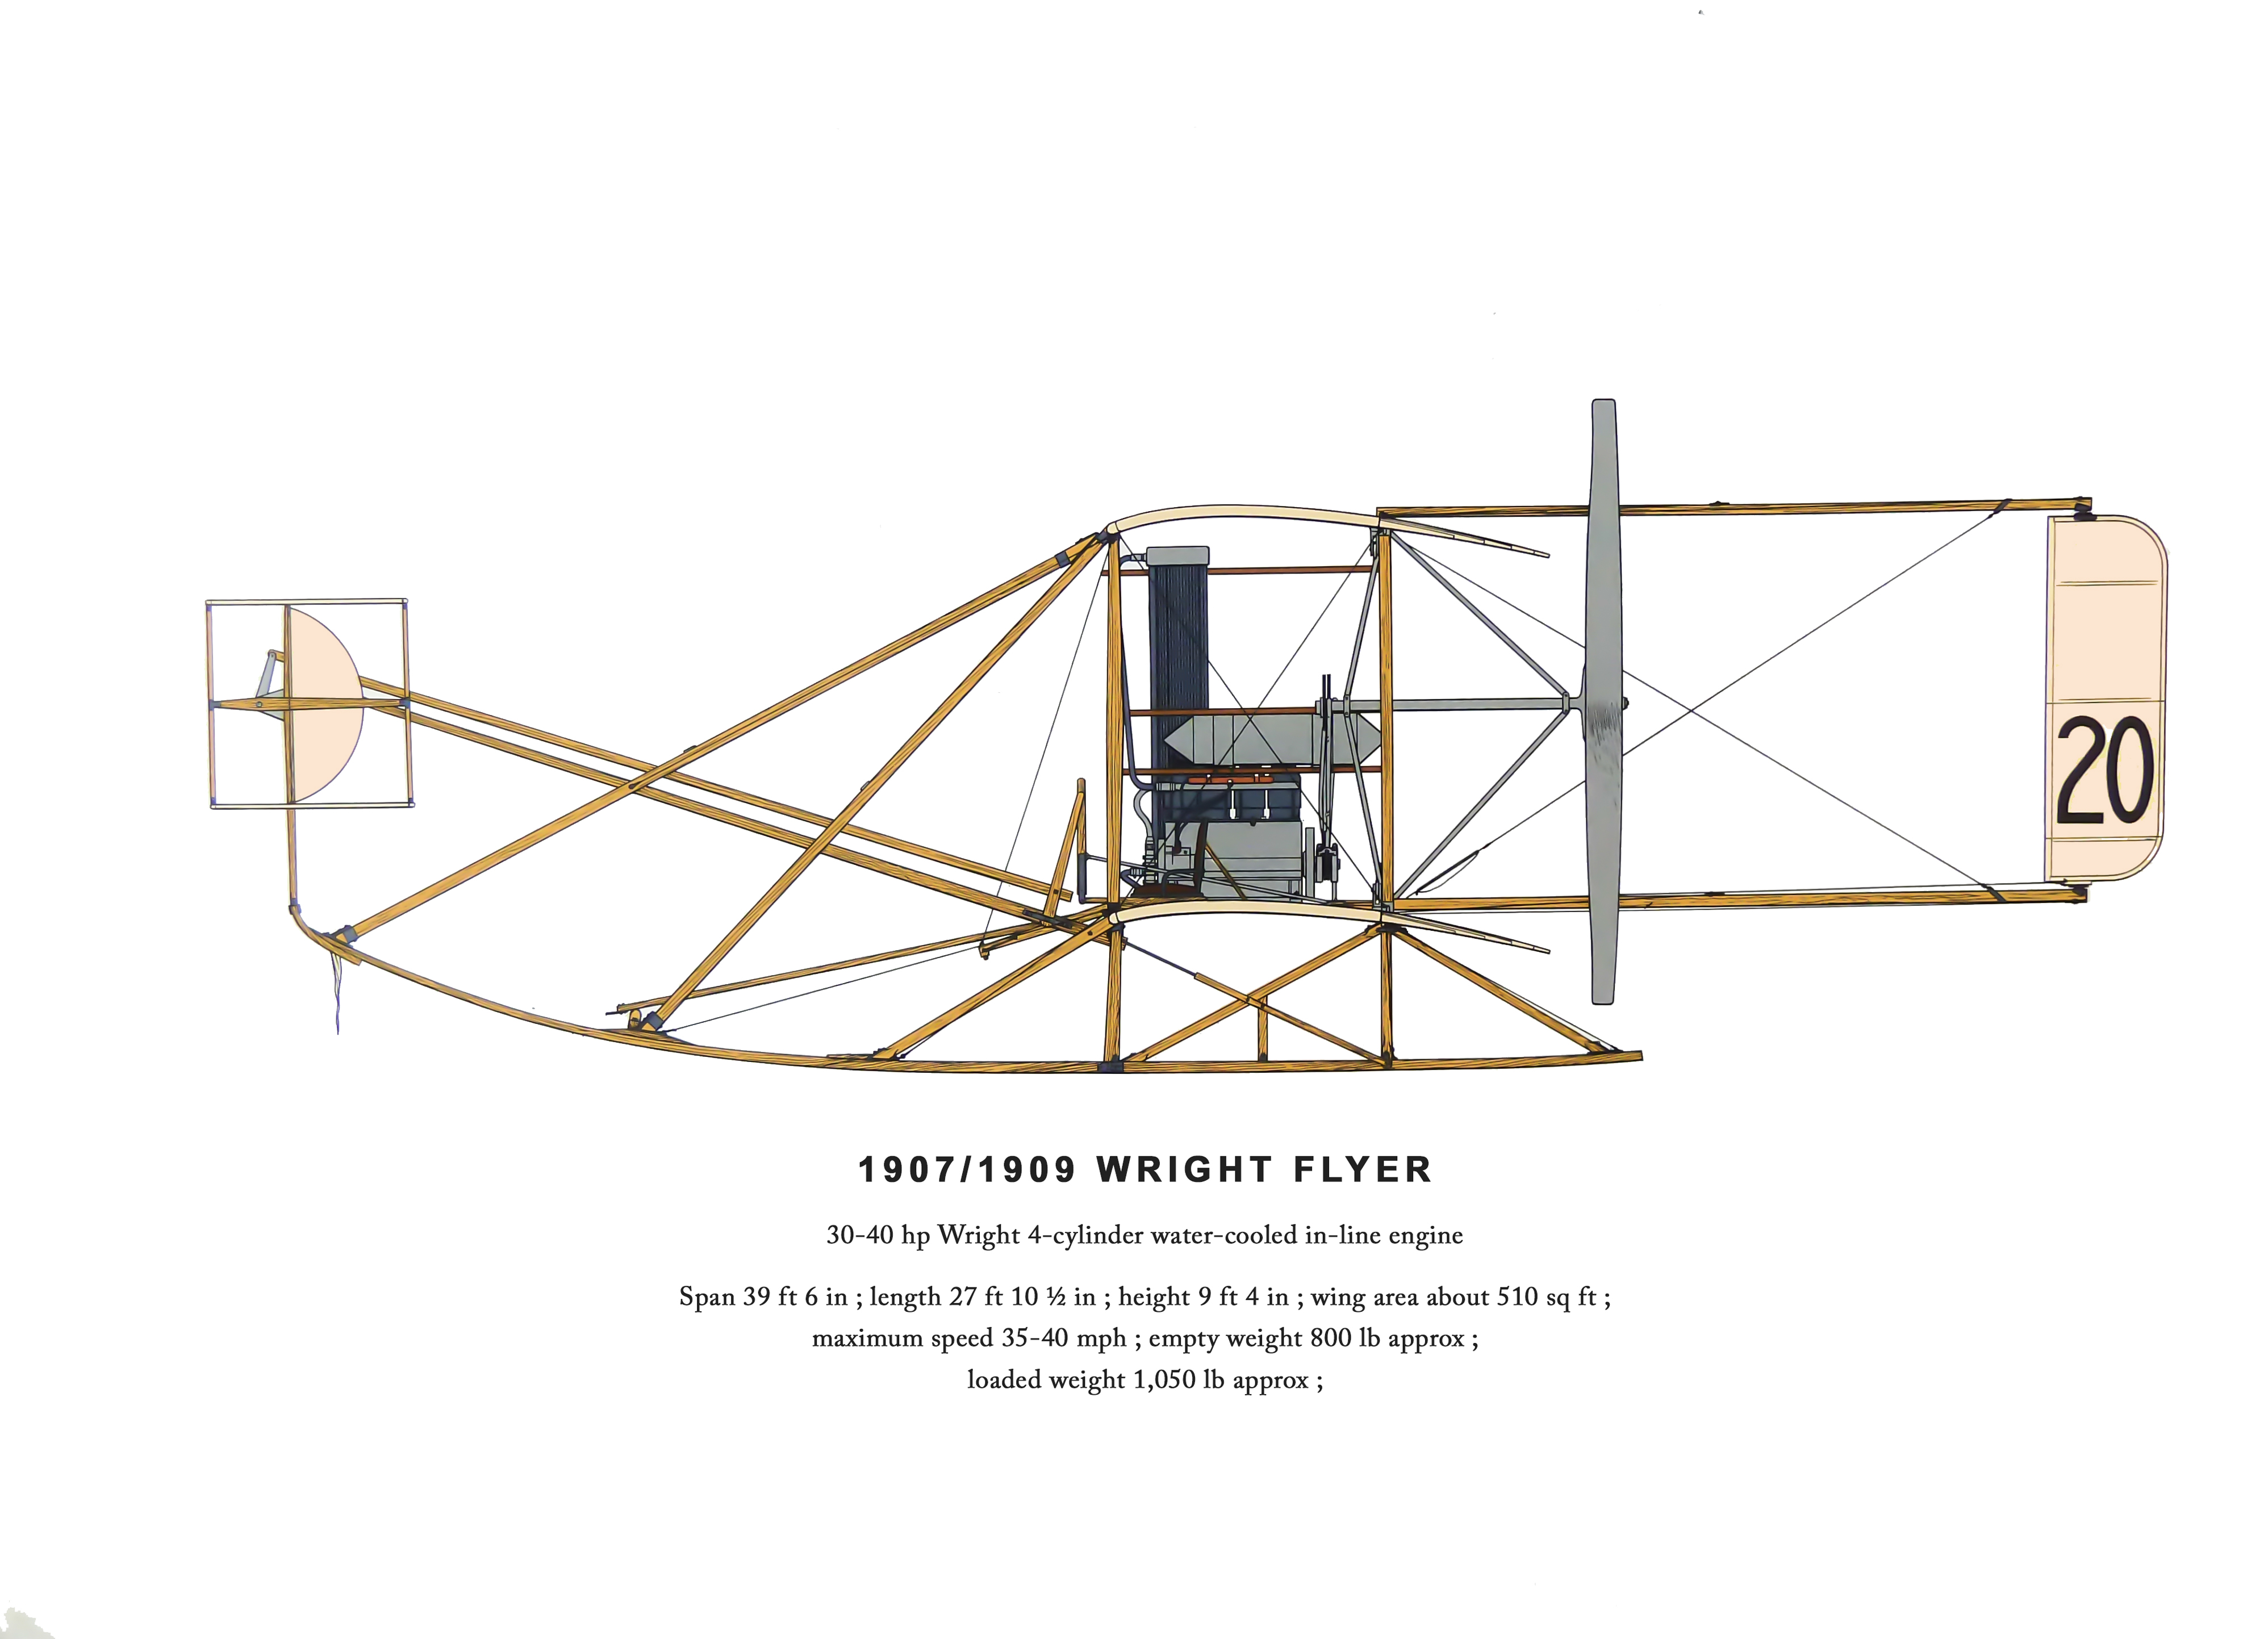 1907/1909 wright flyer